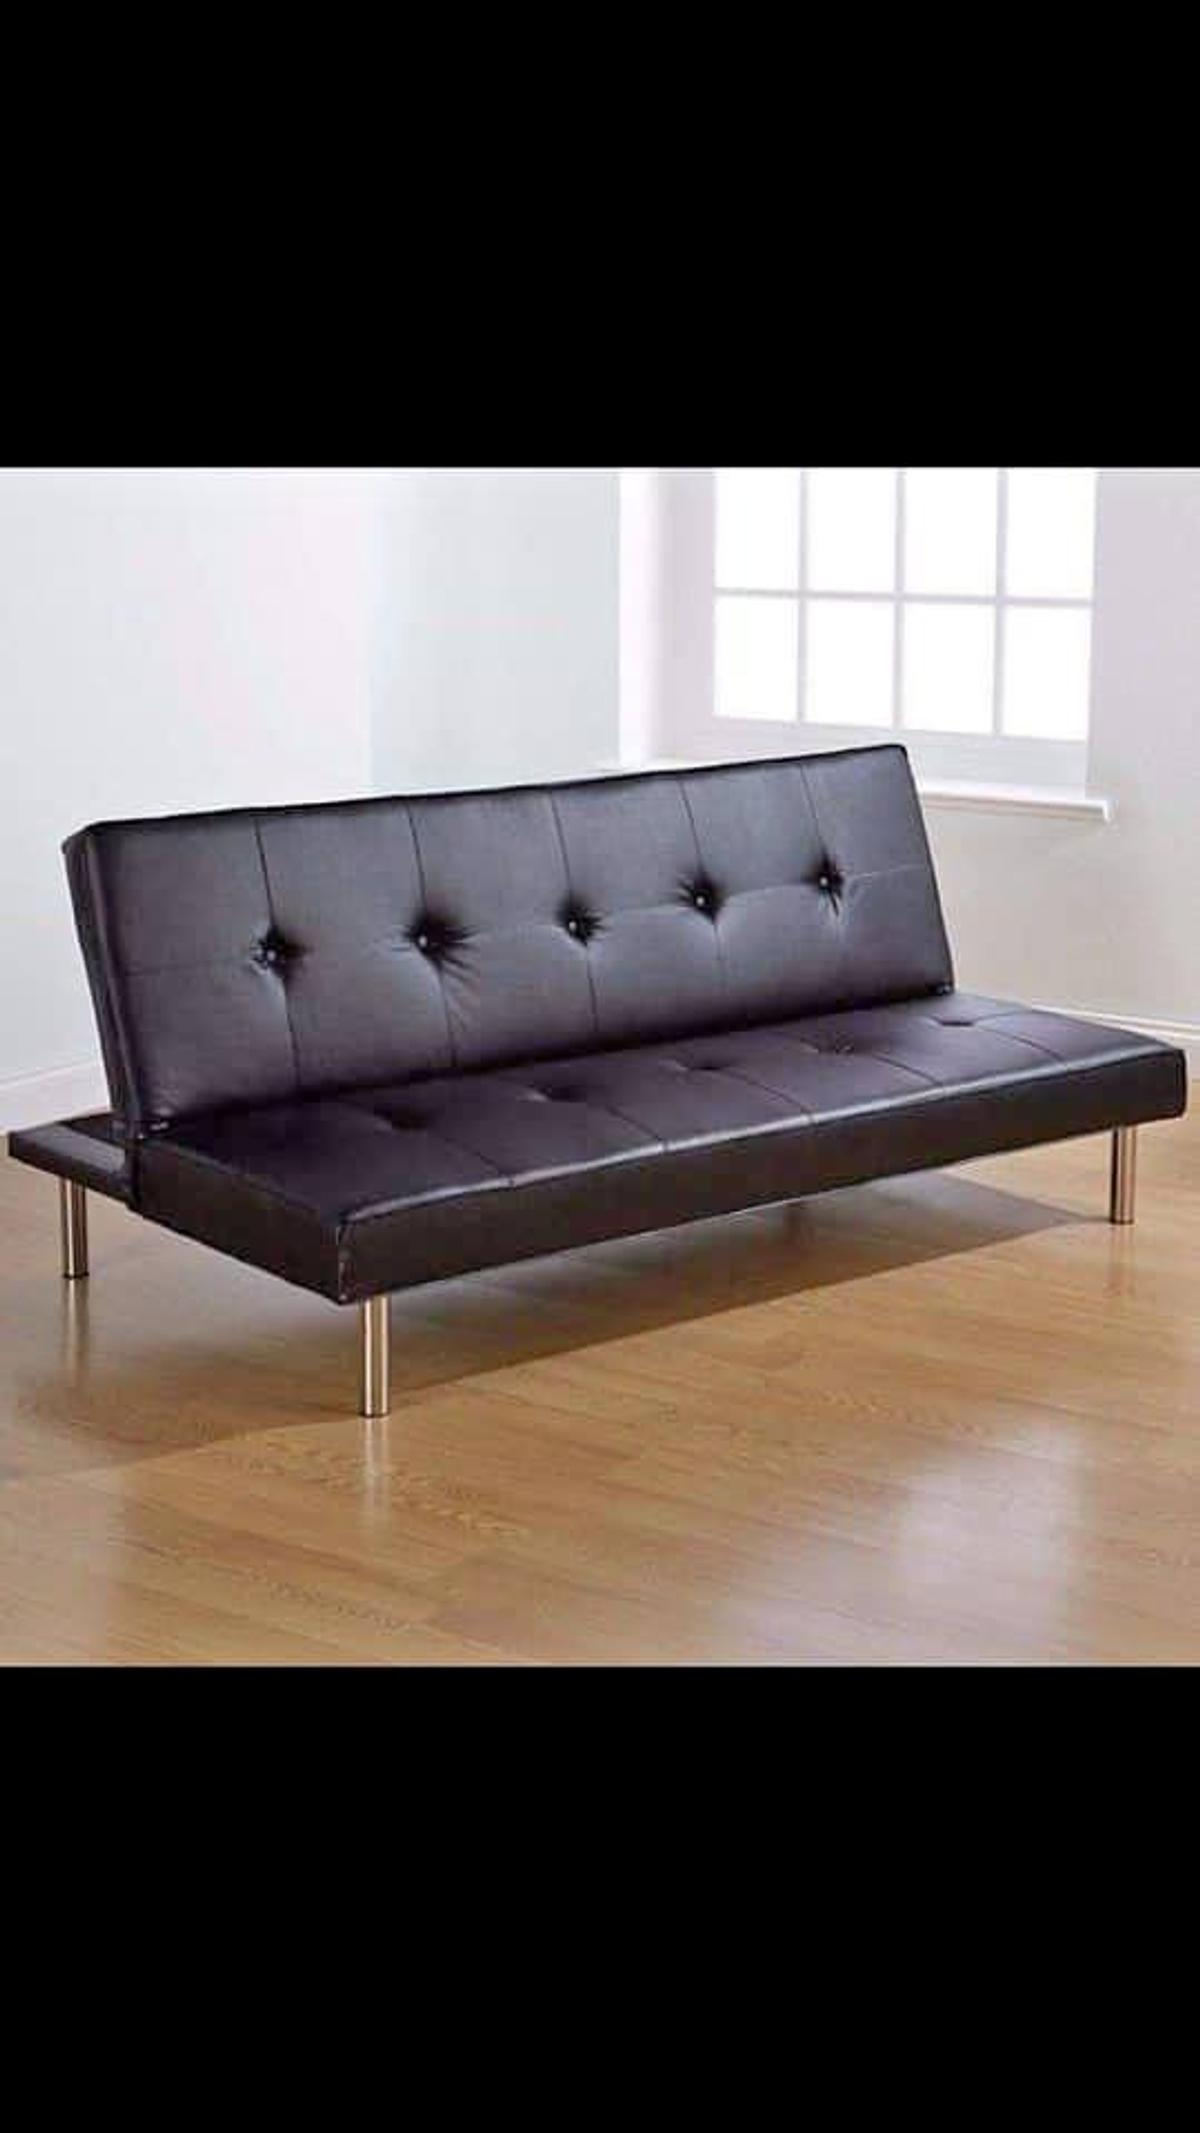 Strange Flat Pack Click Clack Sofabed In Black Or Br In E1 London Machost Co Dining Chair Design Ideas Machostcouk